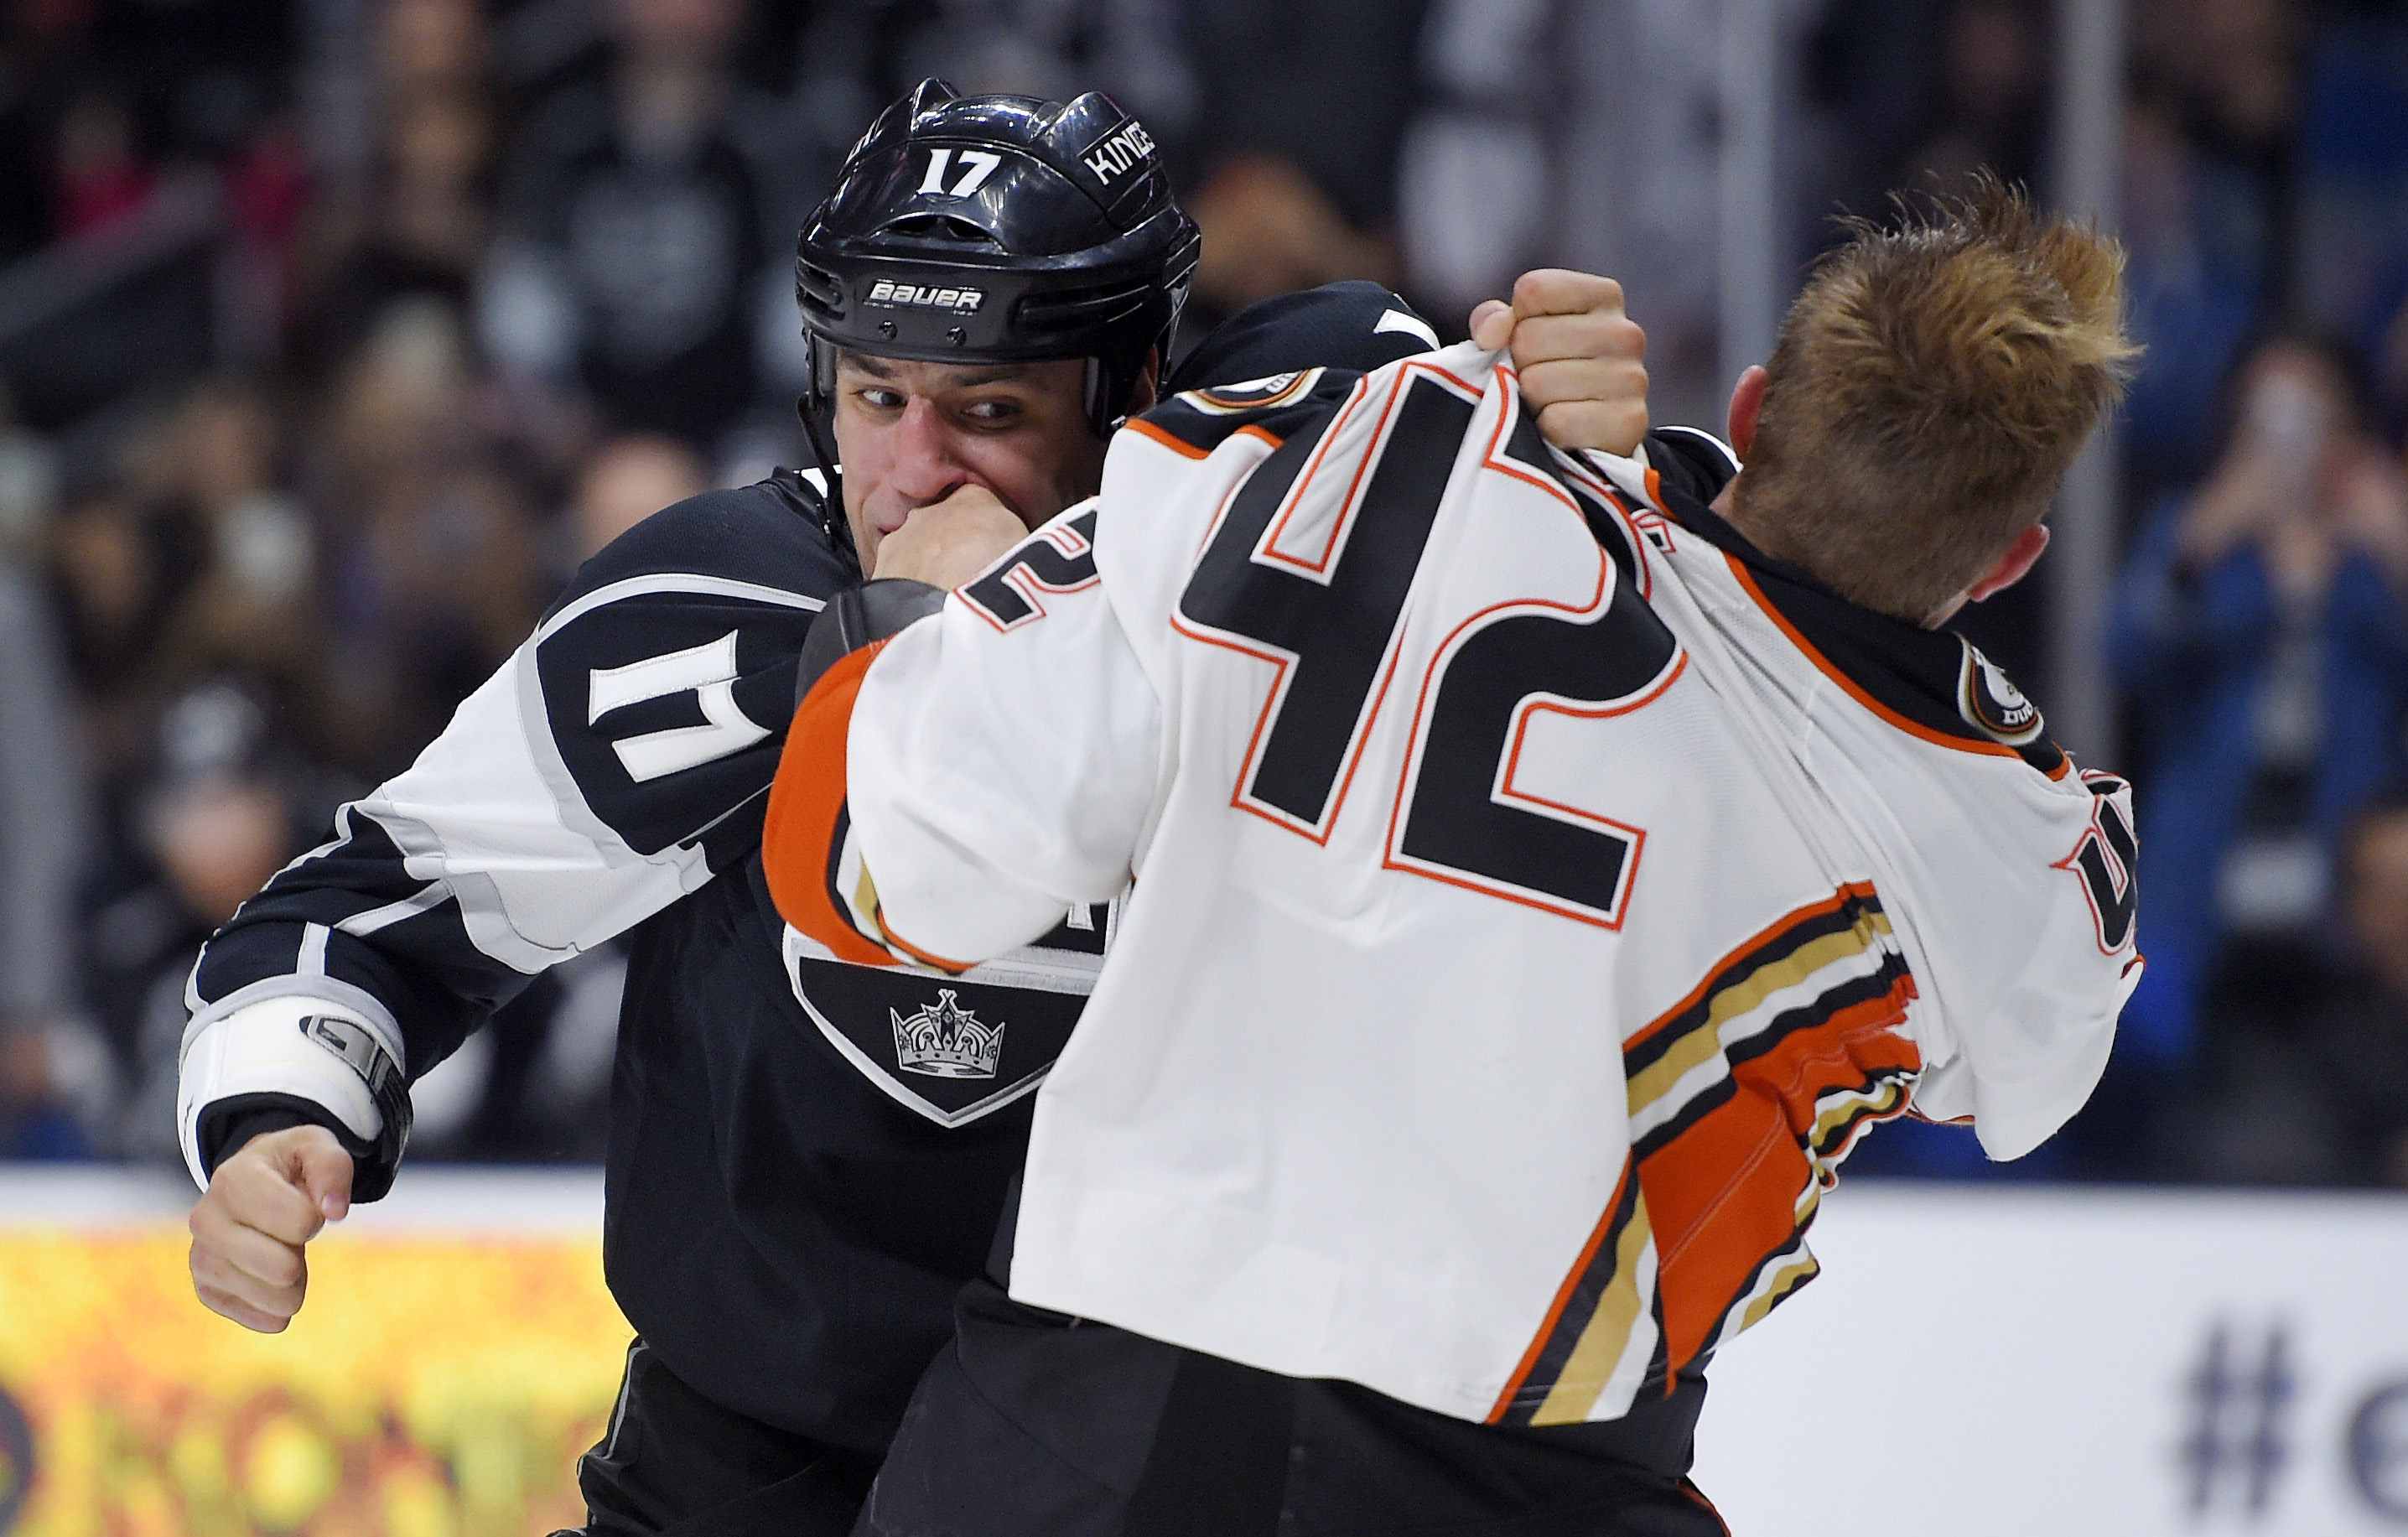 Los Angeles Kings left wing Milan Lucic, left, fights with Anaheim Ducks defenseman Josh Manson during the second period of a preseason NHL hockey game Tuesday, Sept. 29, 2015, in Los Angeles. (AP Photo/Mark J. Terrill)